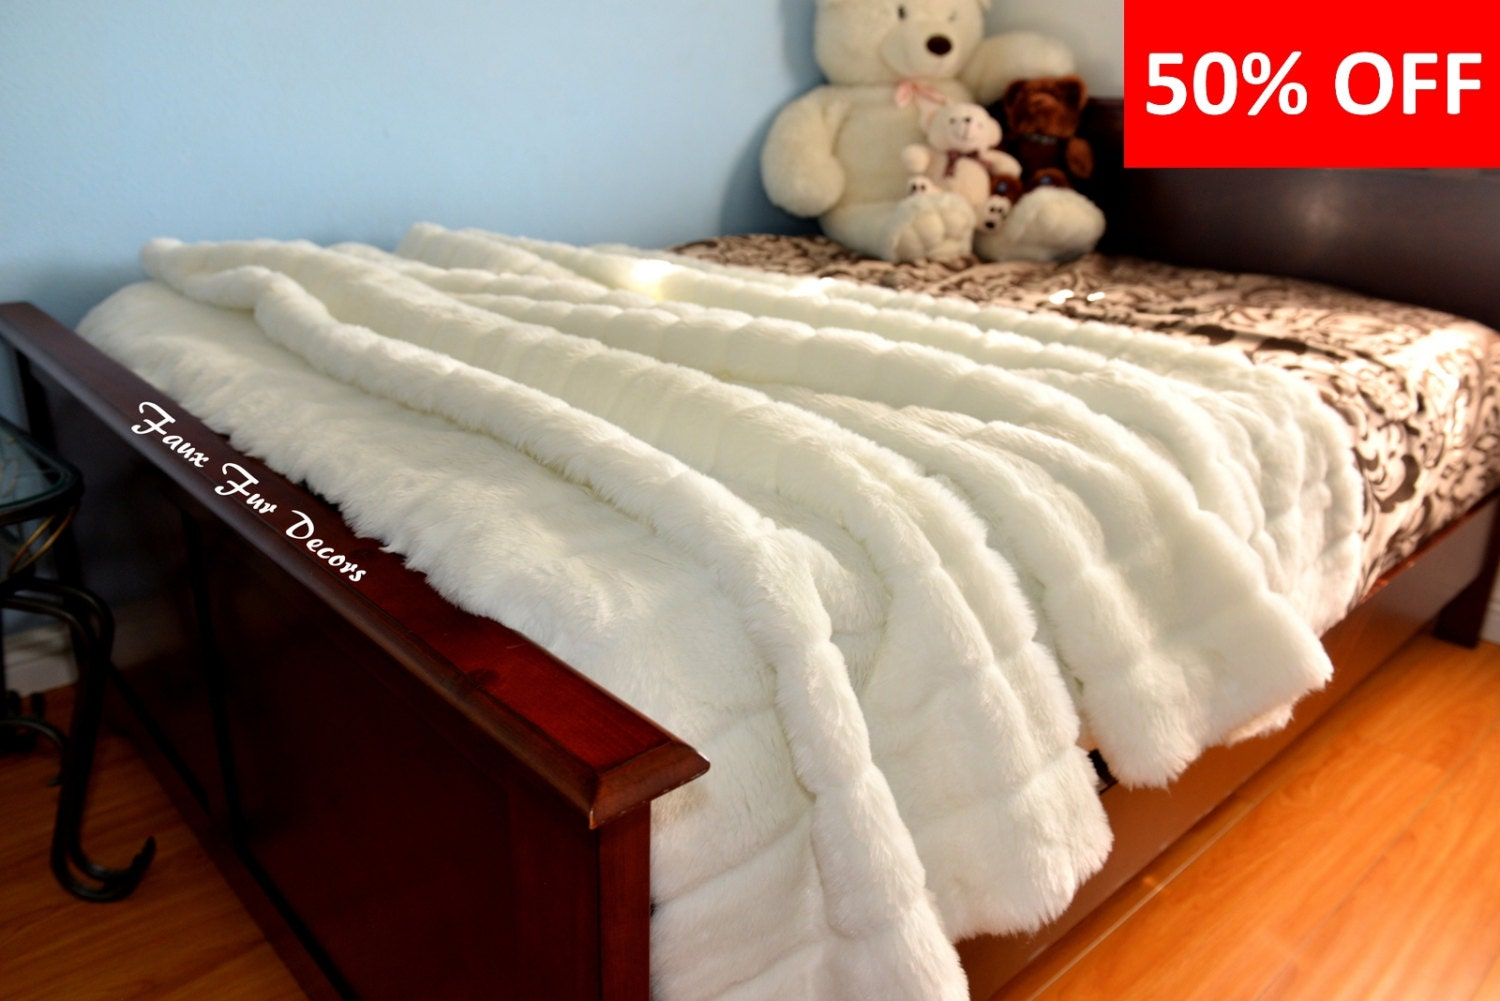 Faux Fur Throws Bedspread Coverlets Bedding Cover Home Decor